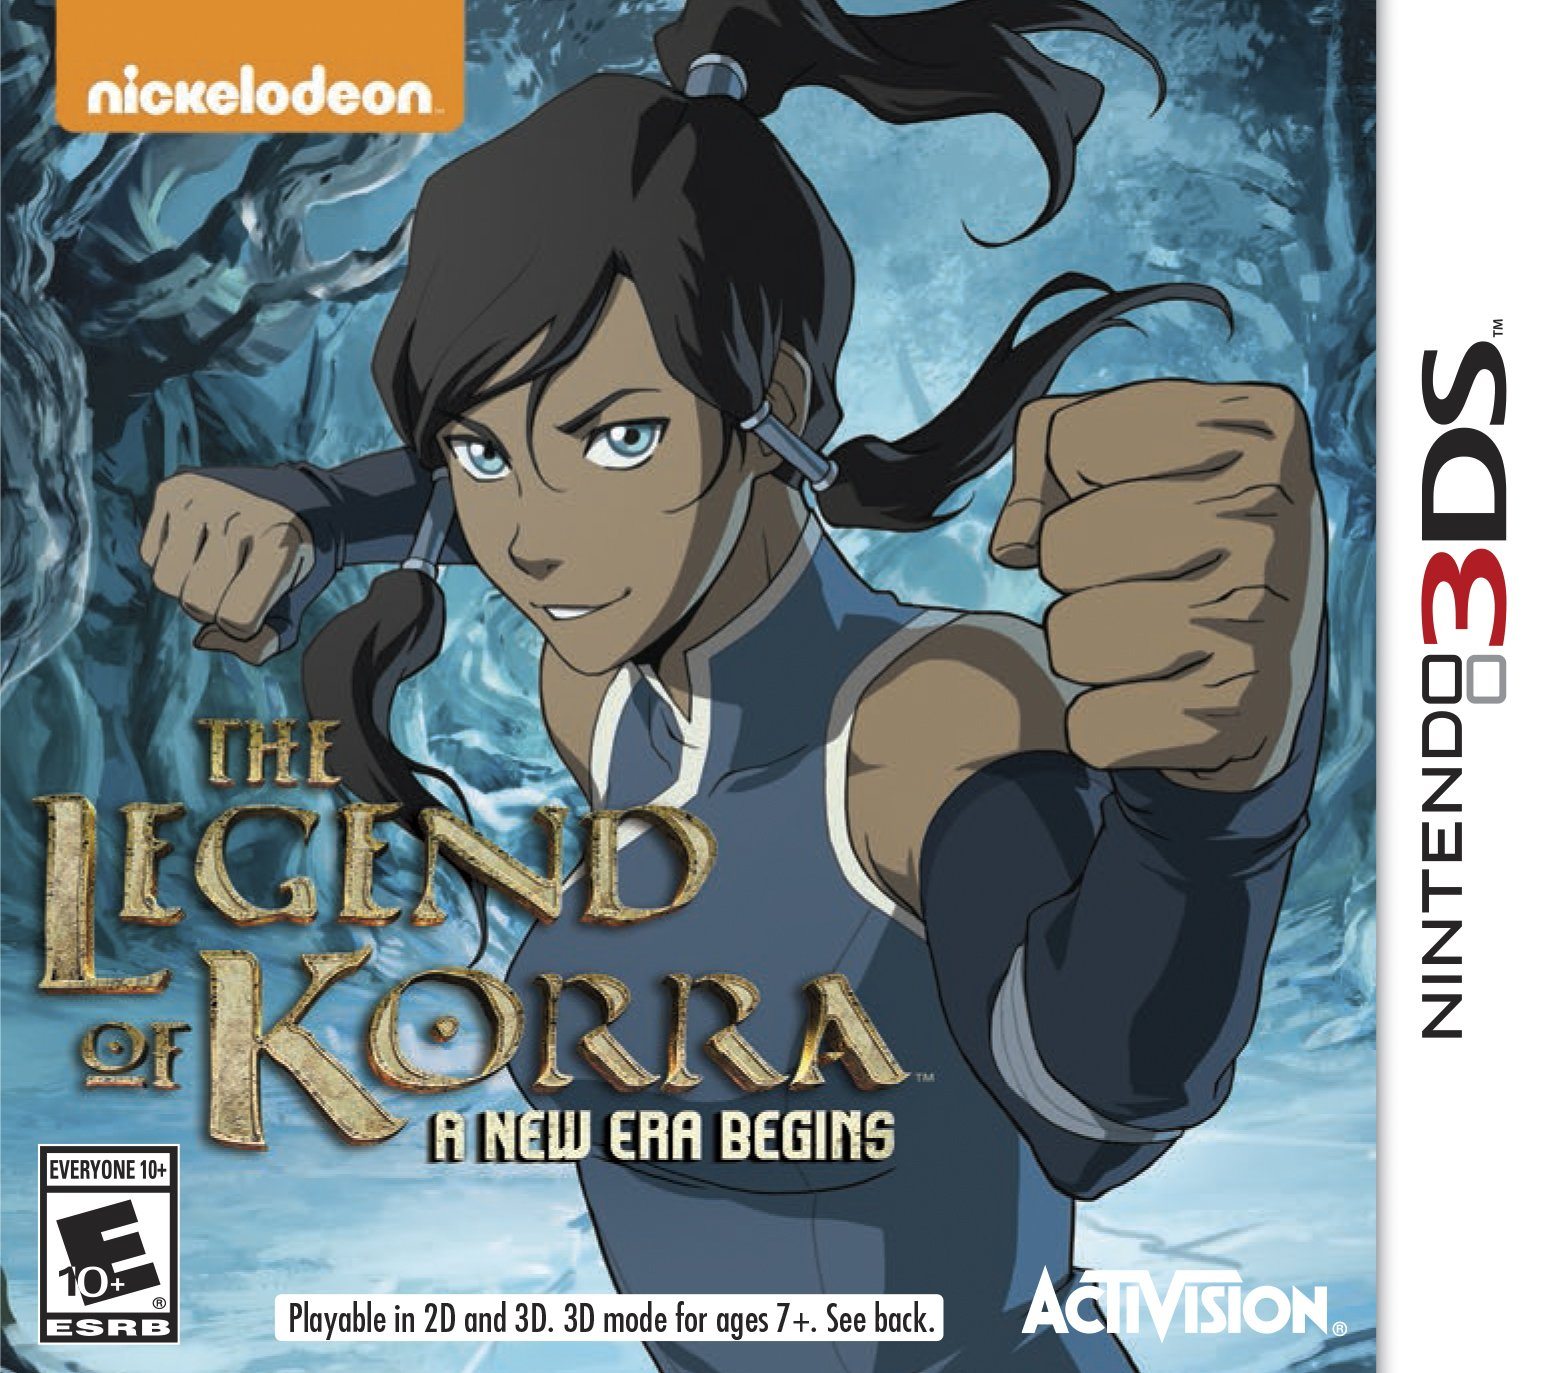 Avatar 2 Release Date: The Legend Of Korra A New Era Begins Release Date (3DS